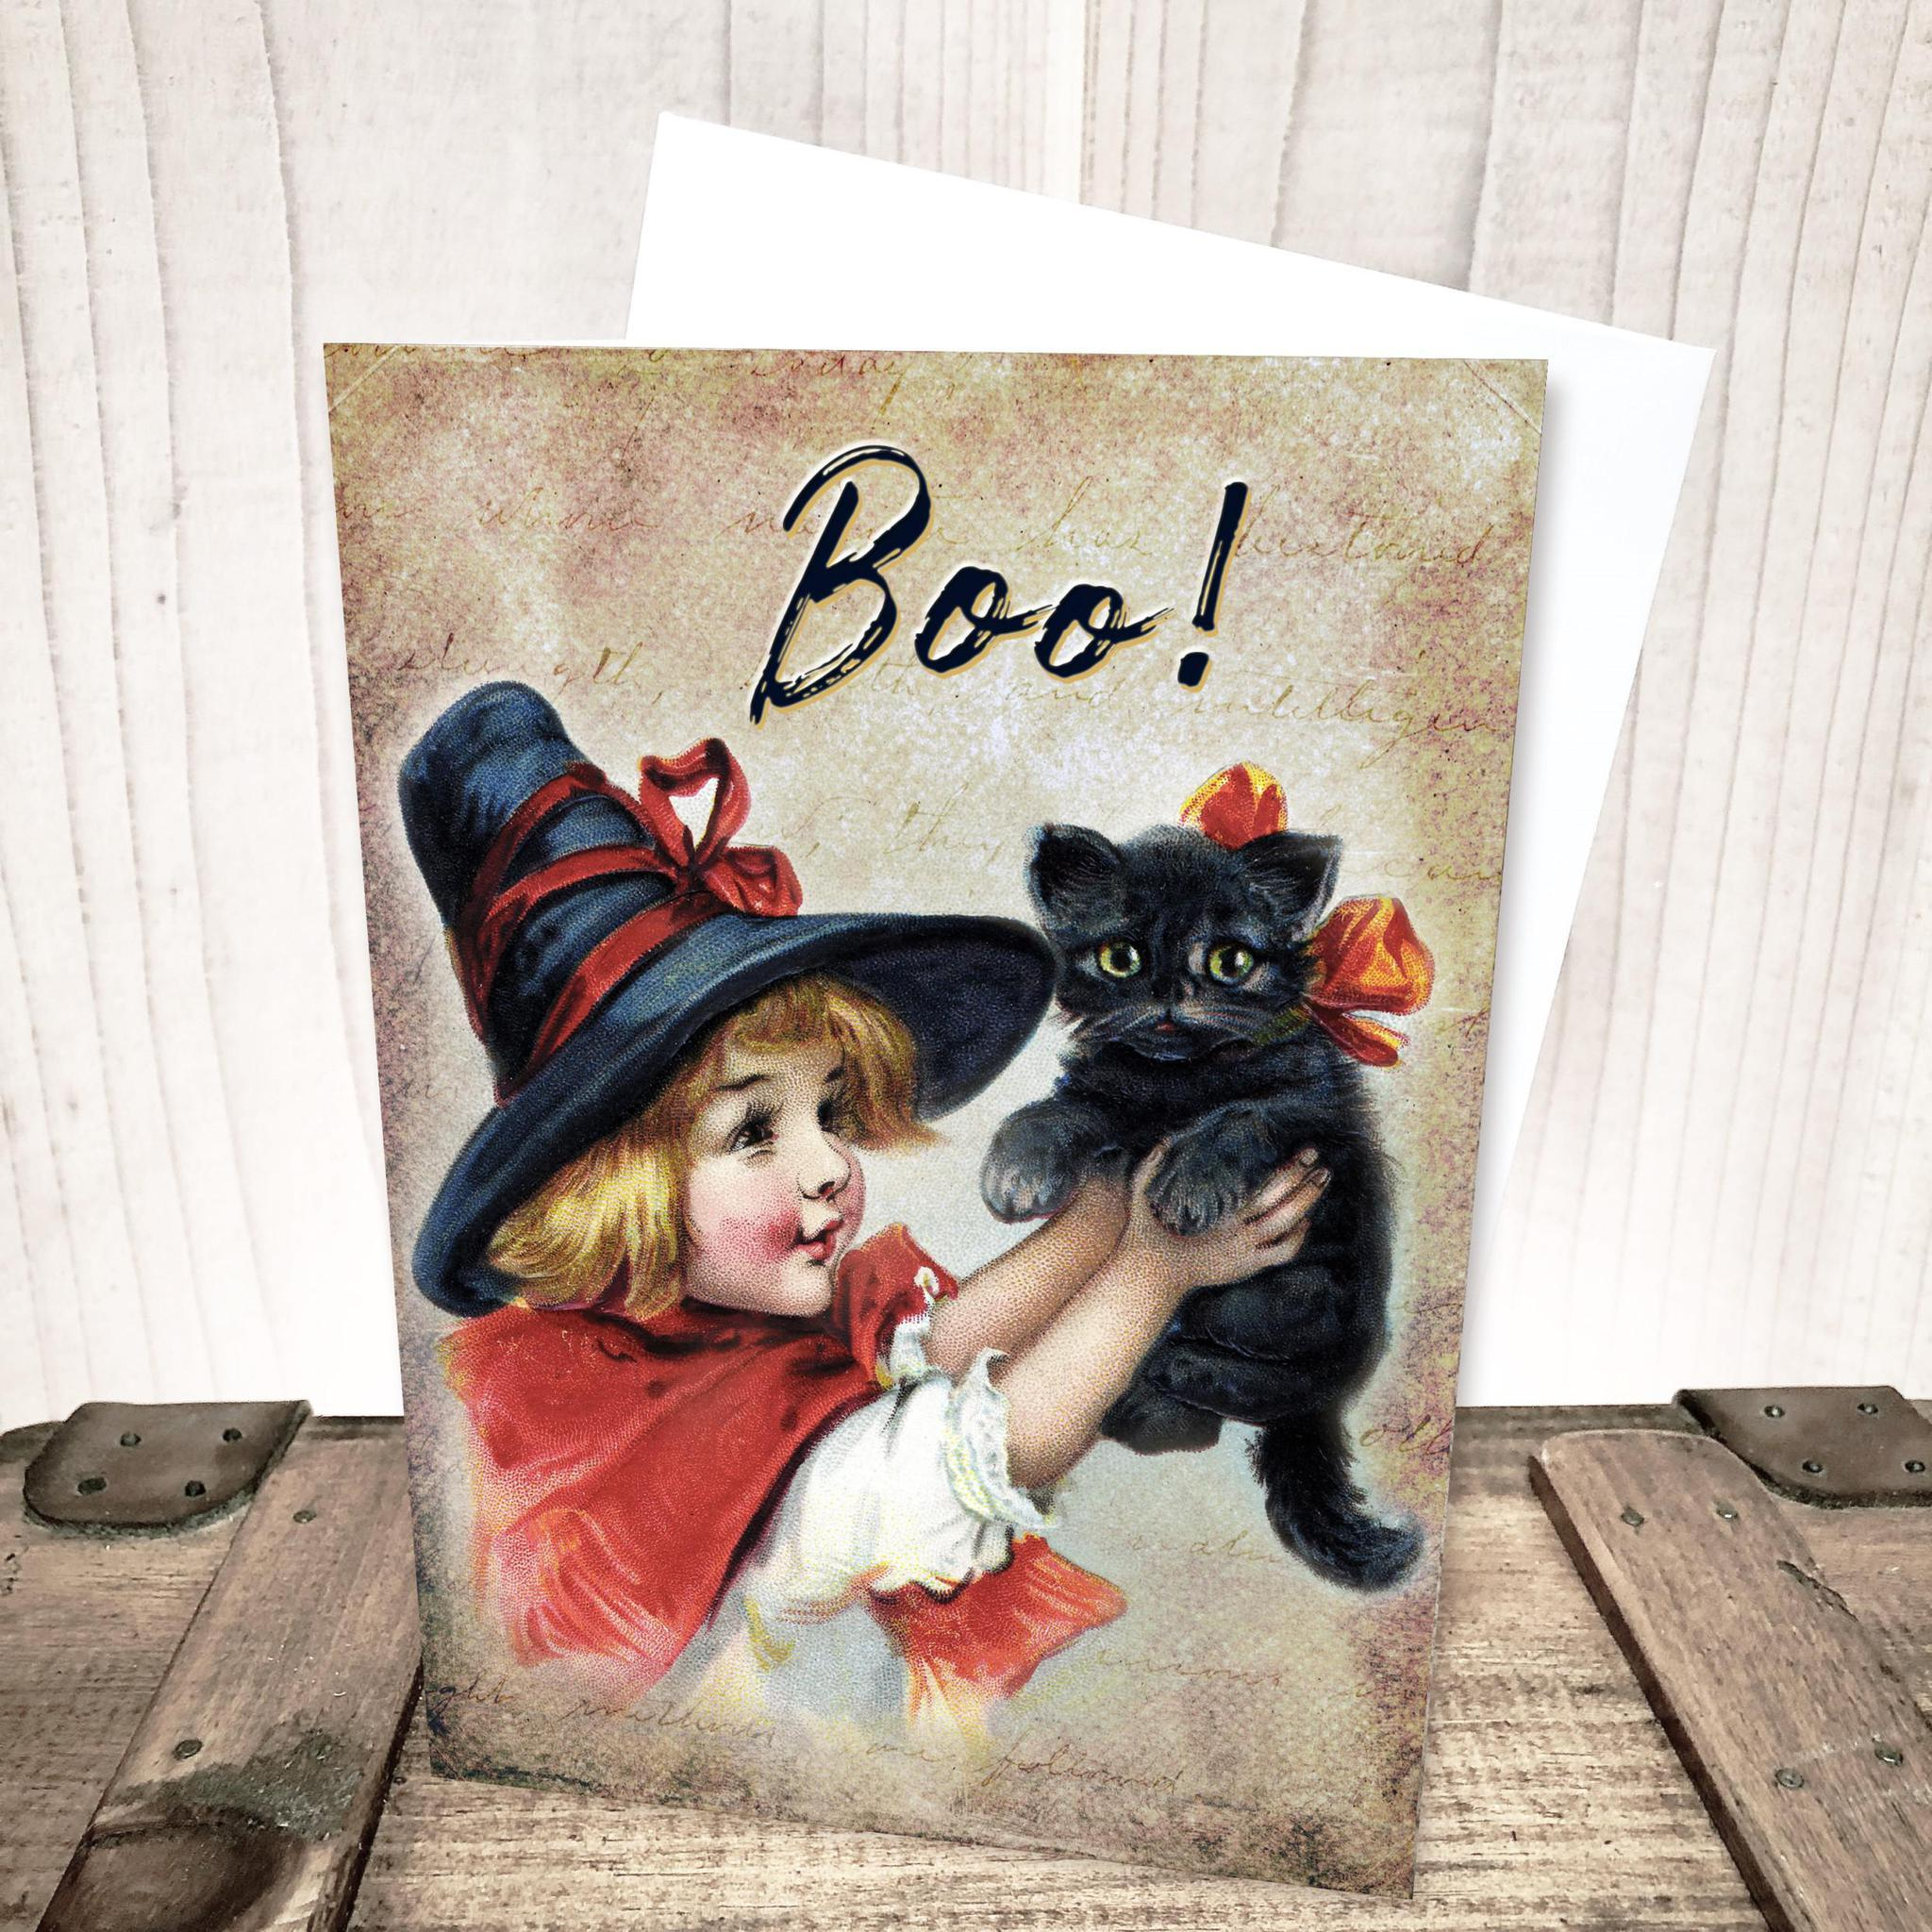 Boo!  Girl with Black Cat Halloween Card by Yesterday's Best